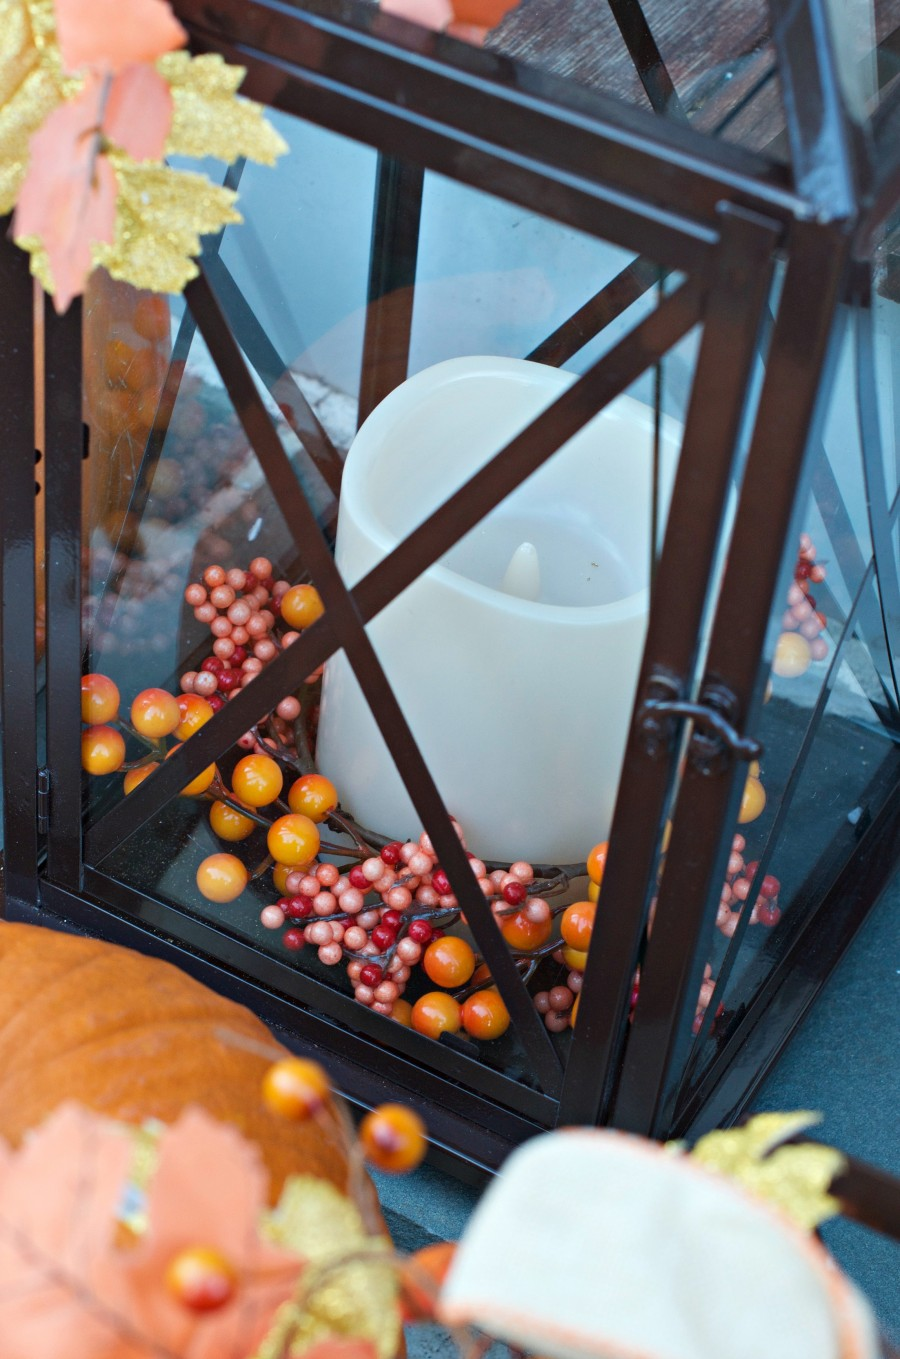 FALL OUTDOOR DECORATING WITH LANTERNS- Here's an easy way to light up your fall decorating